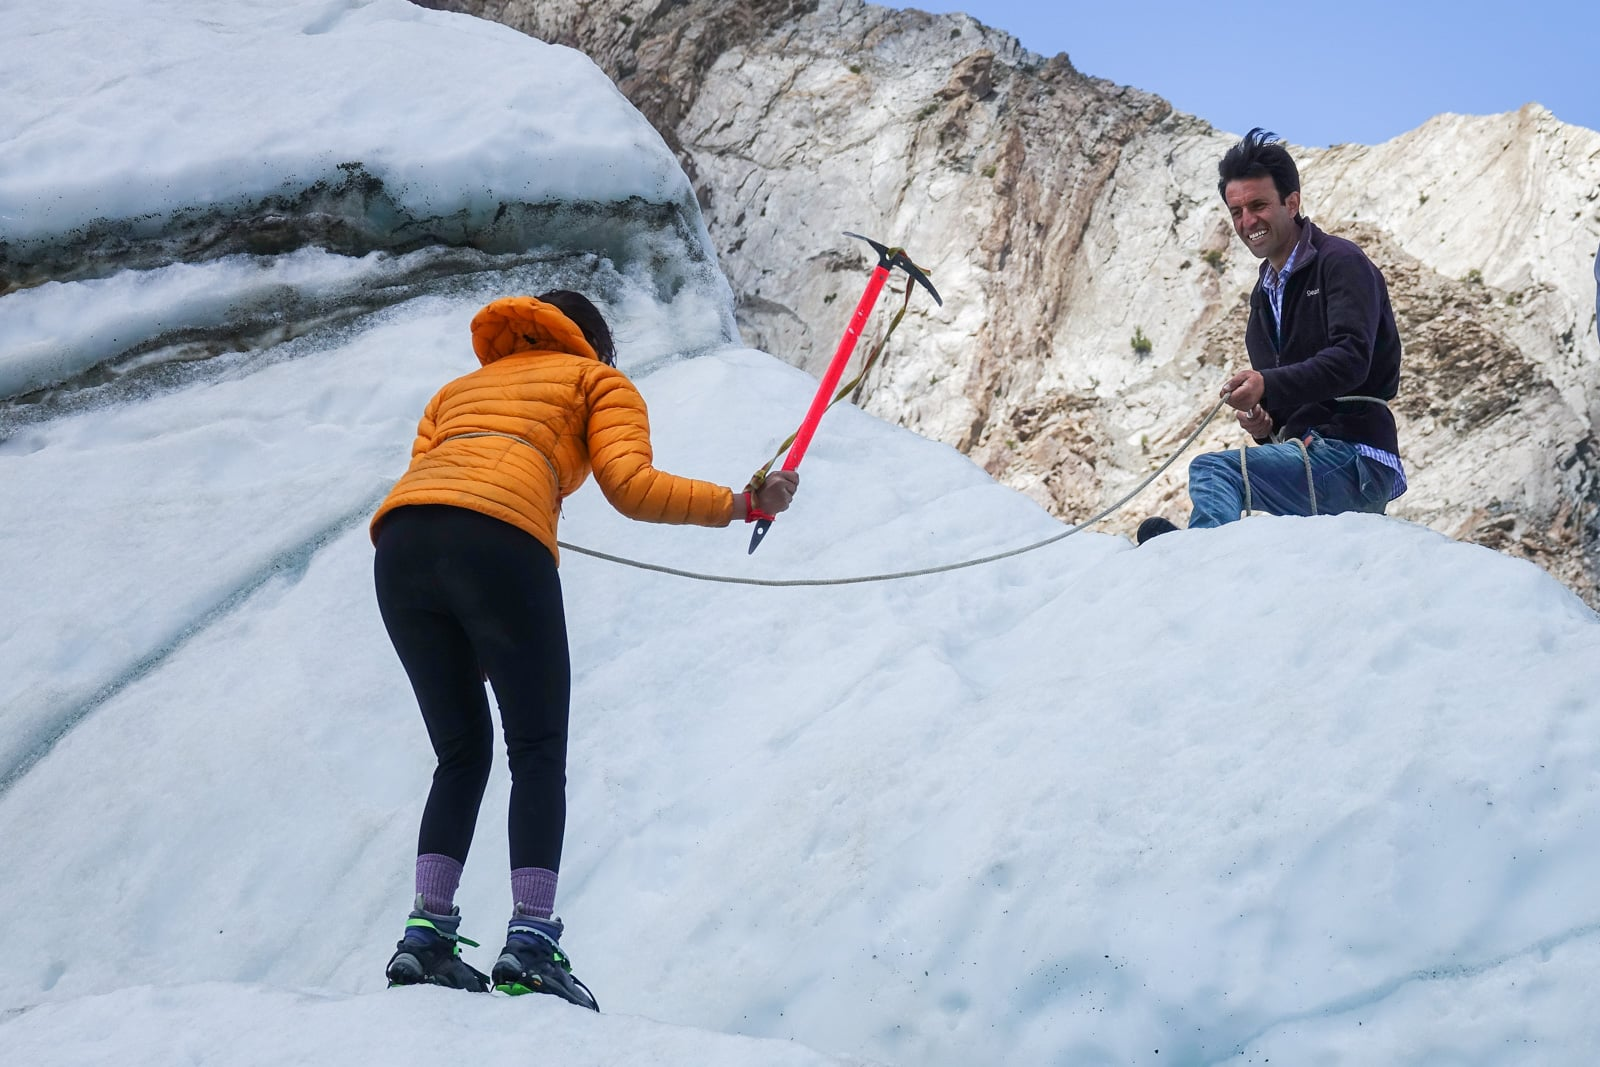 Homestay in Pakistan - Ice climbing in Gilgit Baltistan - Lost With Purpose travel blog